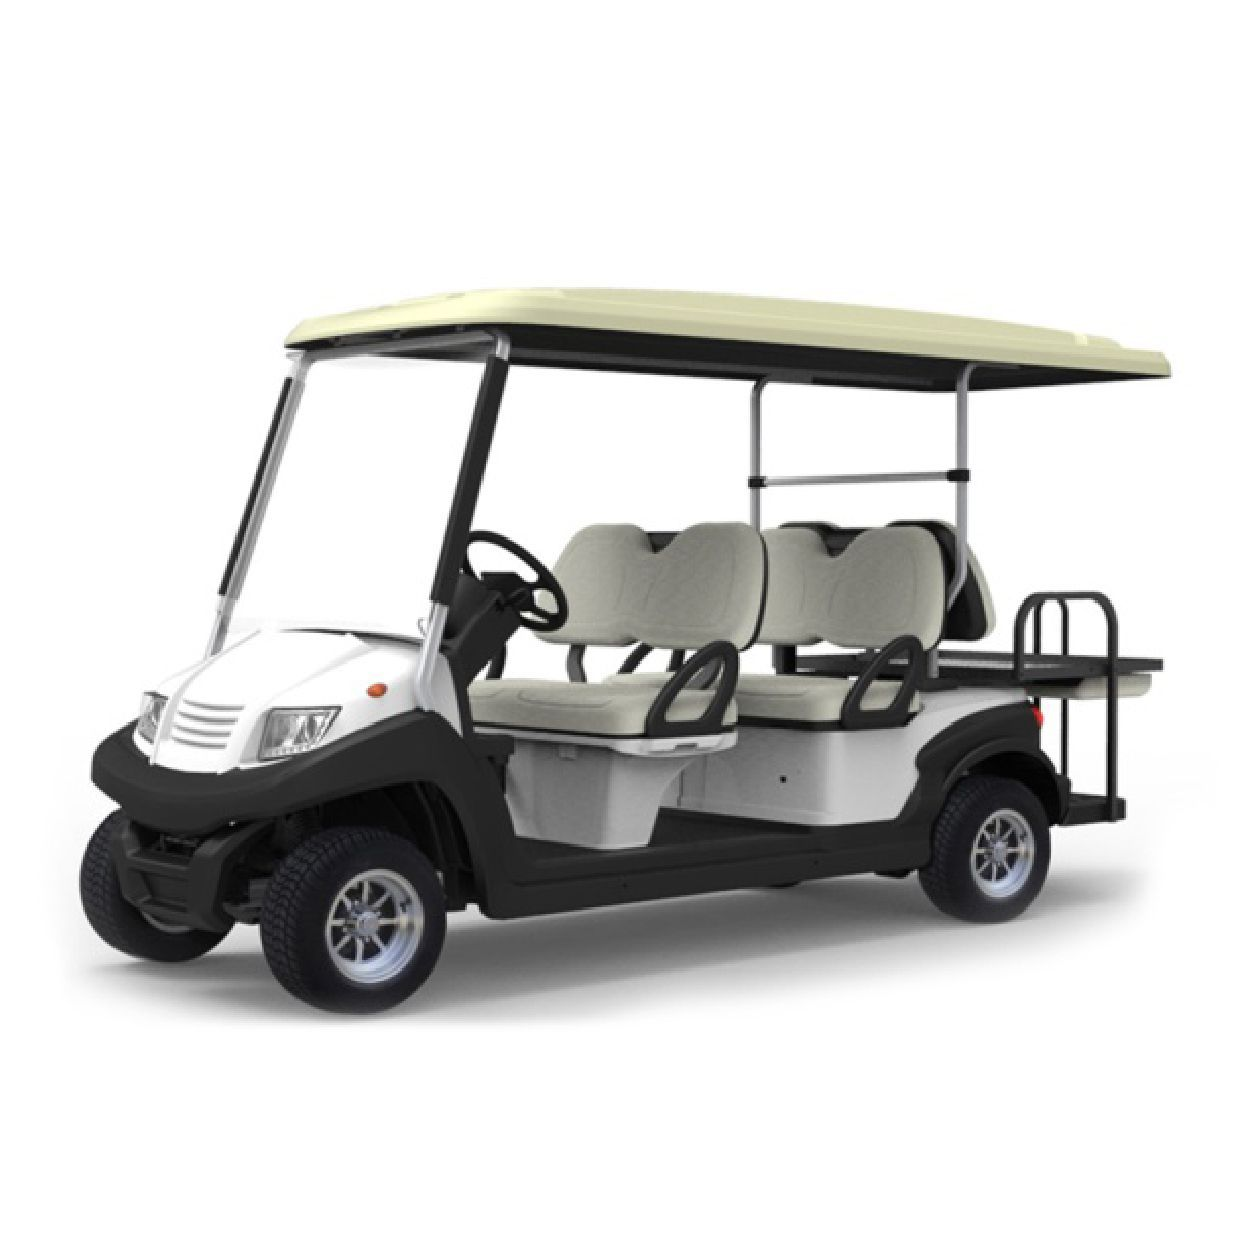 Buggy Eagle 204 01 - Xe Ô Tô Buggy Eagle 204